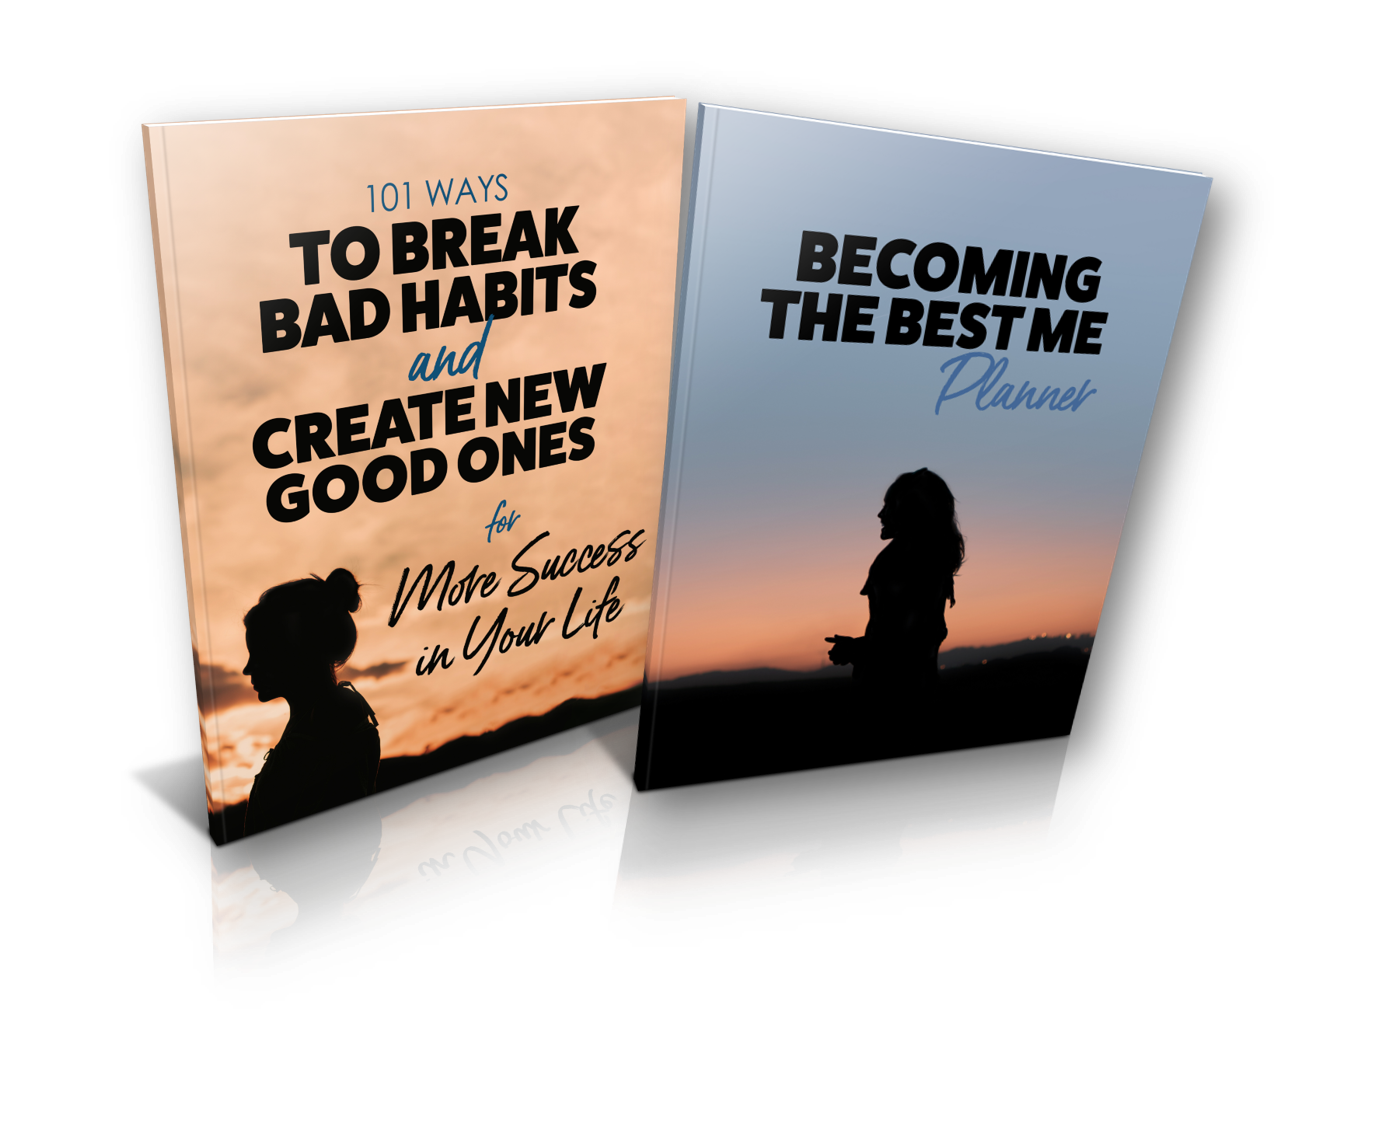 Click on the image to register to receive 101 Ways To Break Bad Habits... ebook & Becoming The Best Me 365 day planner